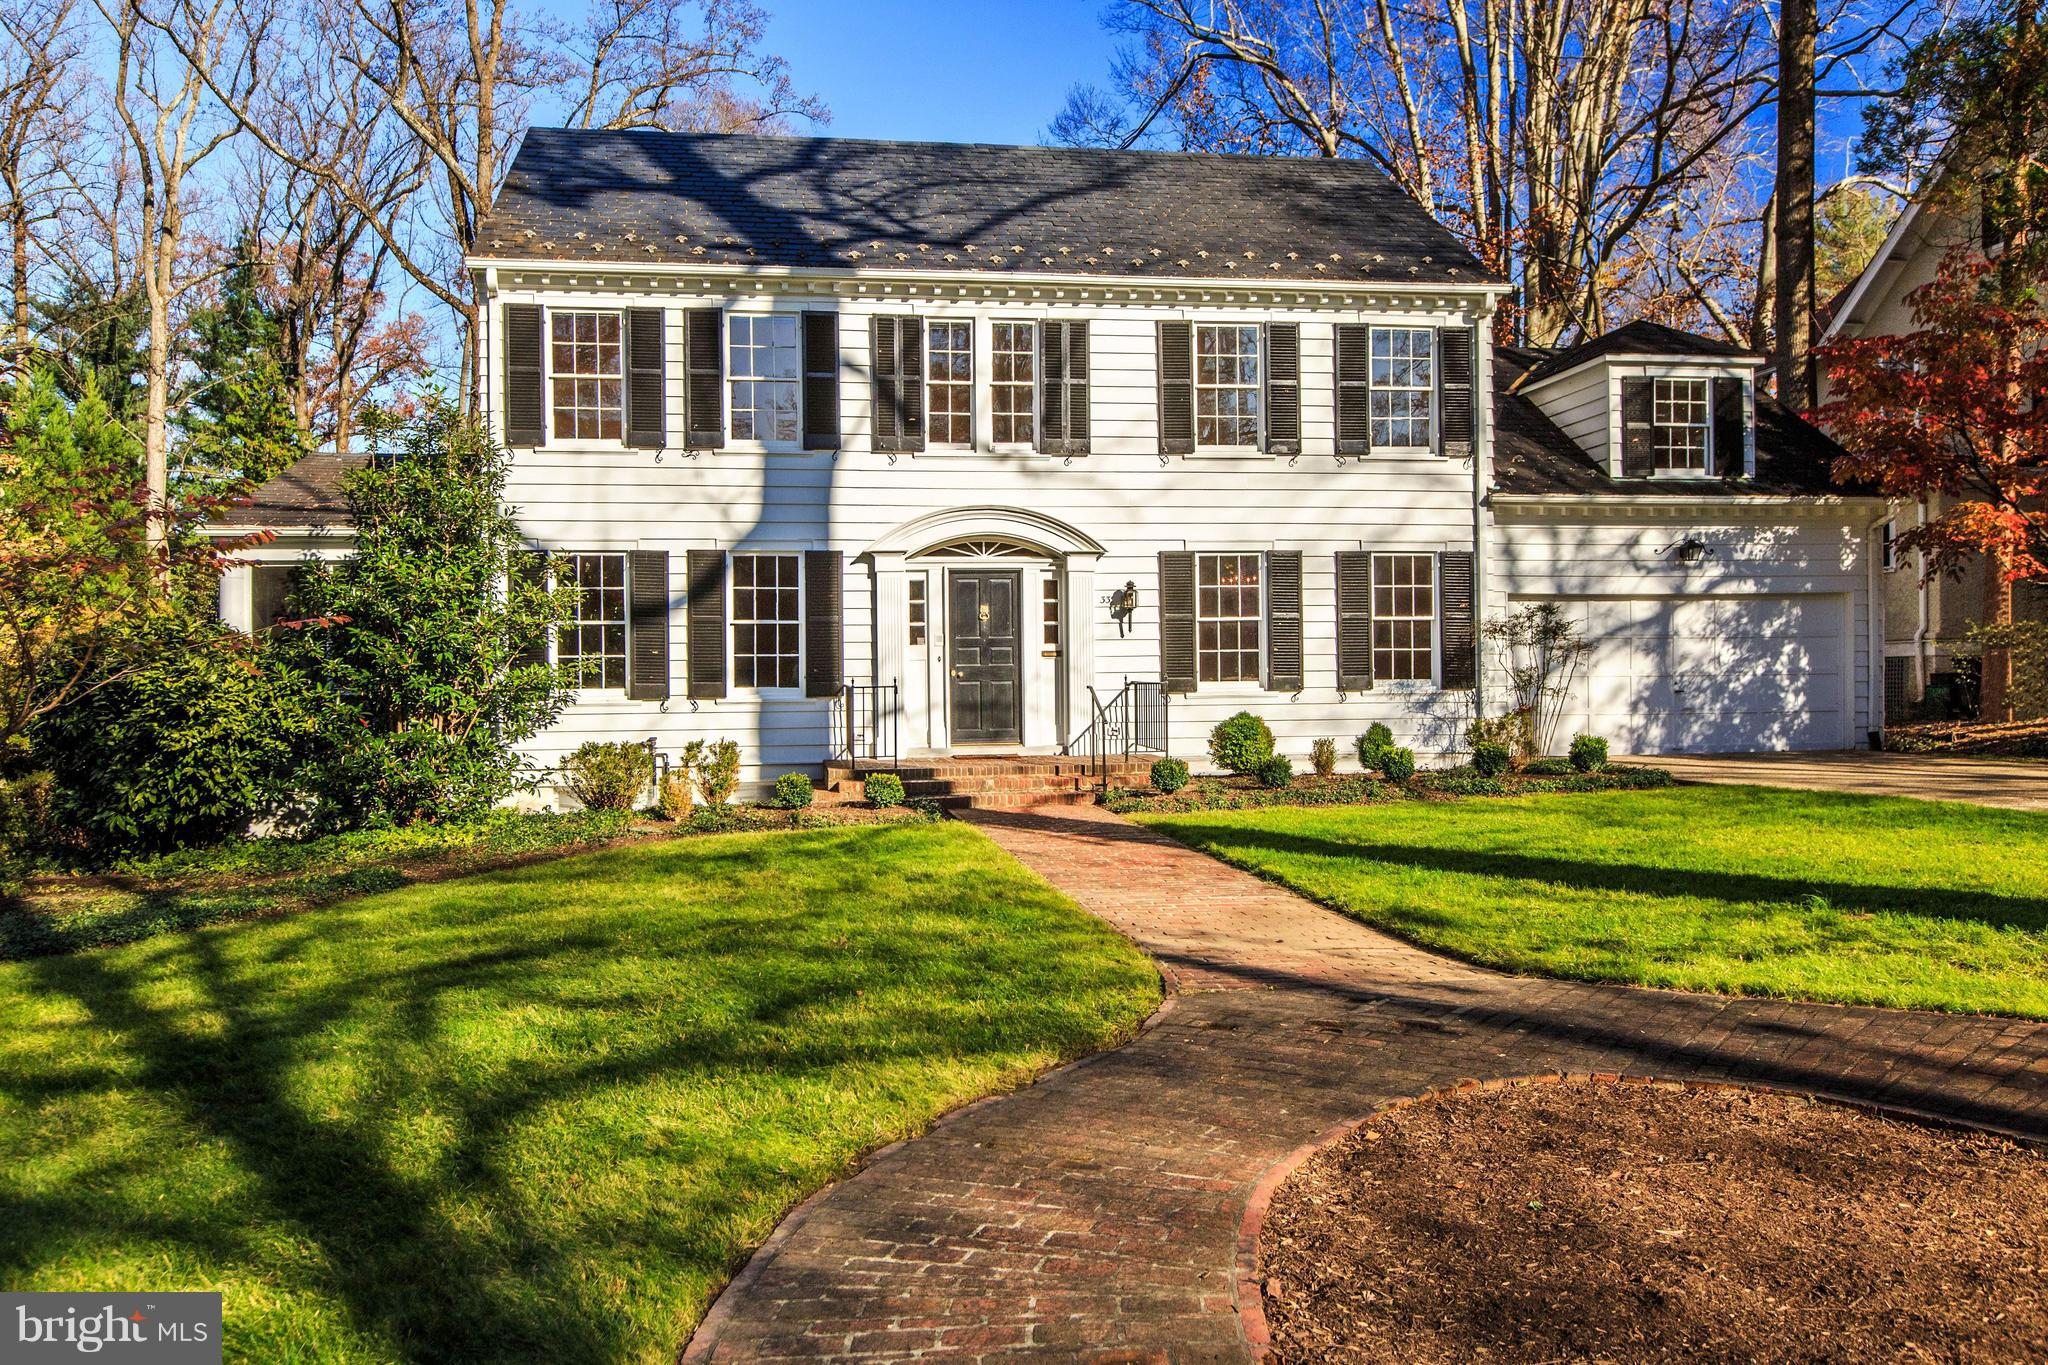 33 W KIRKE STREET, CHEVY CHASE, MD 20815